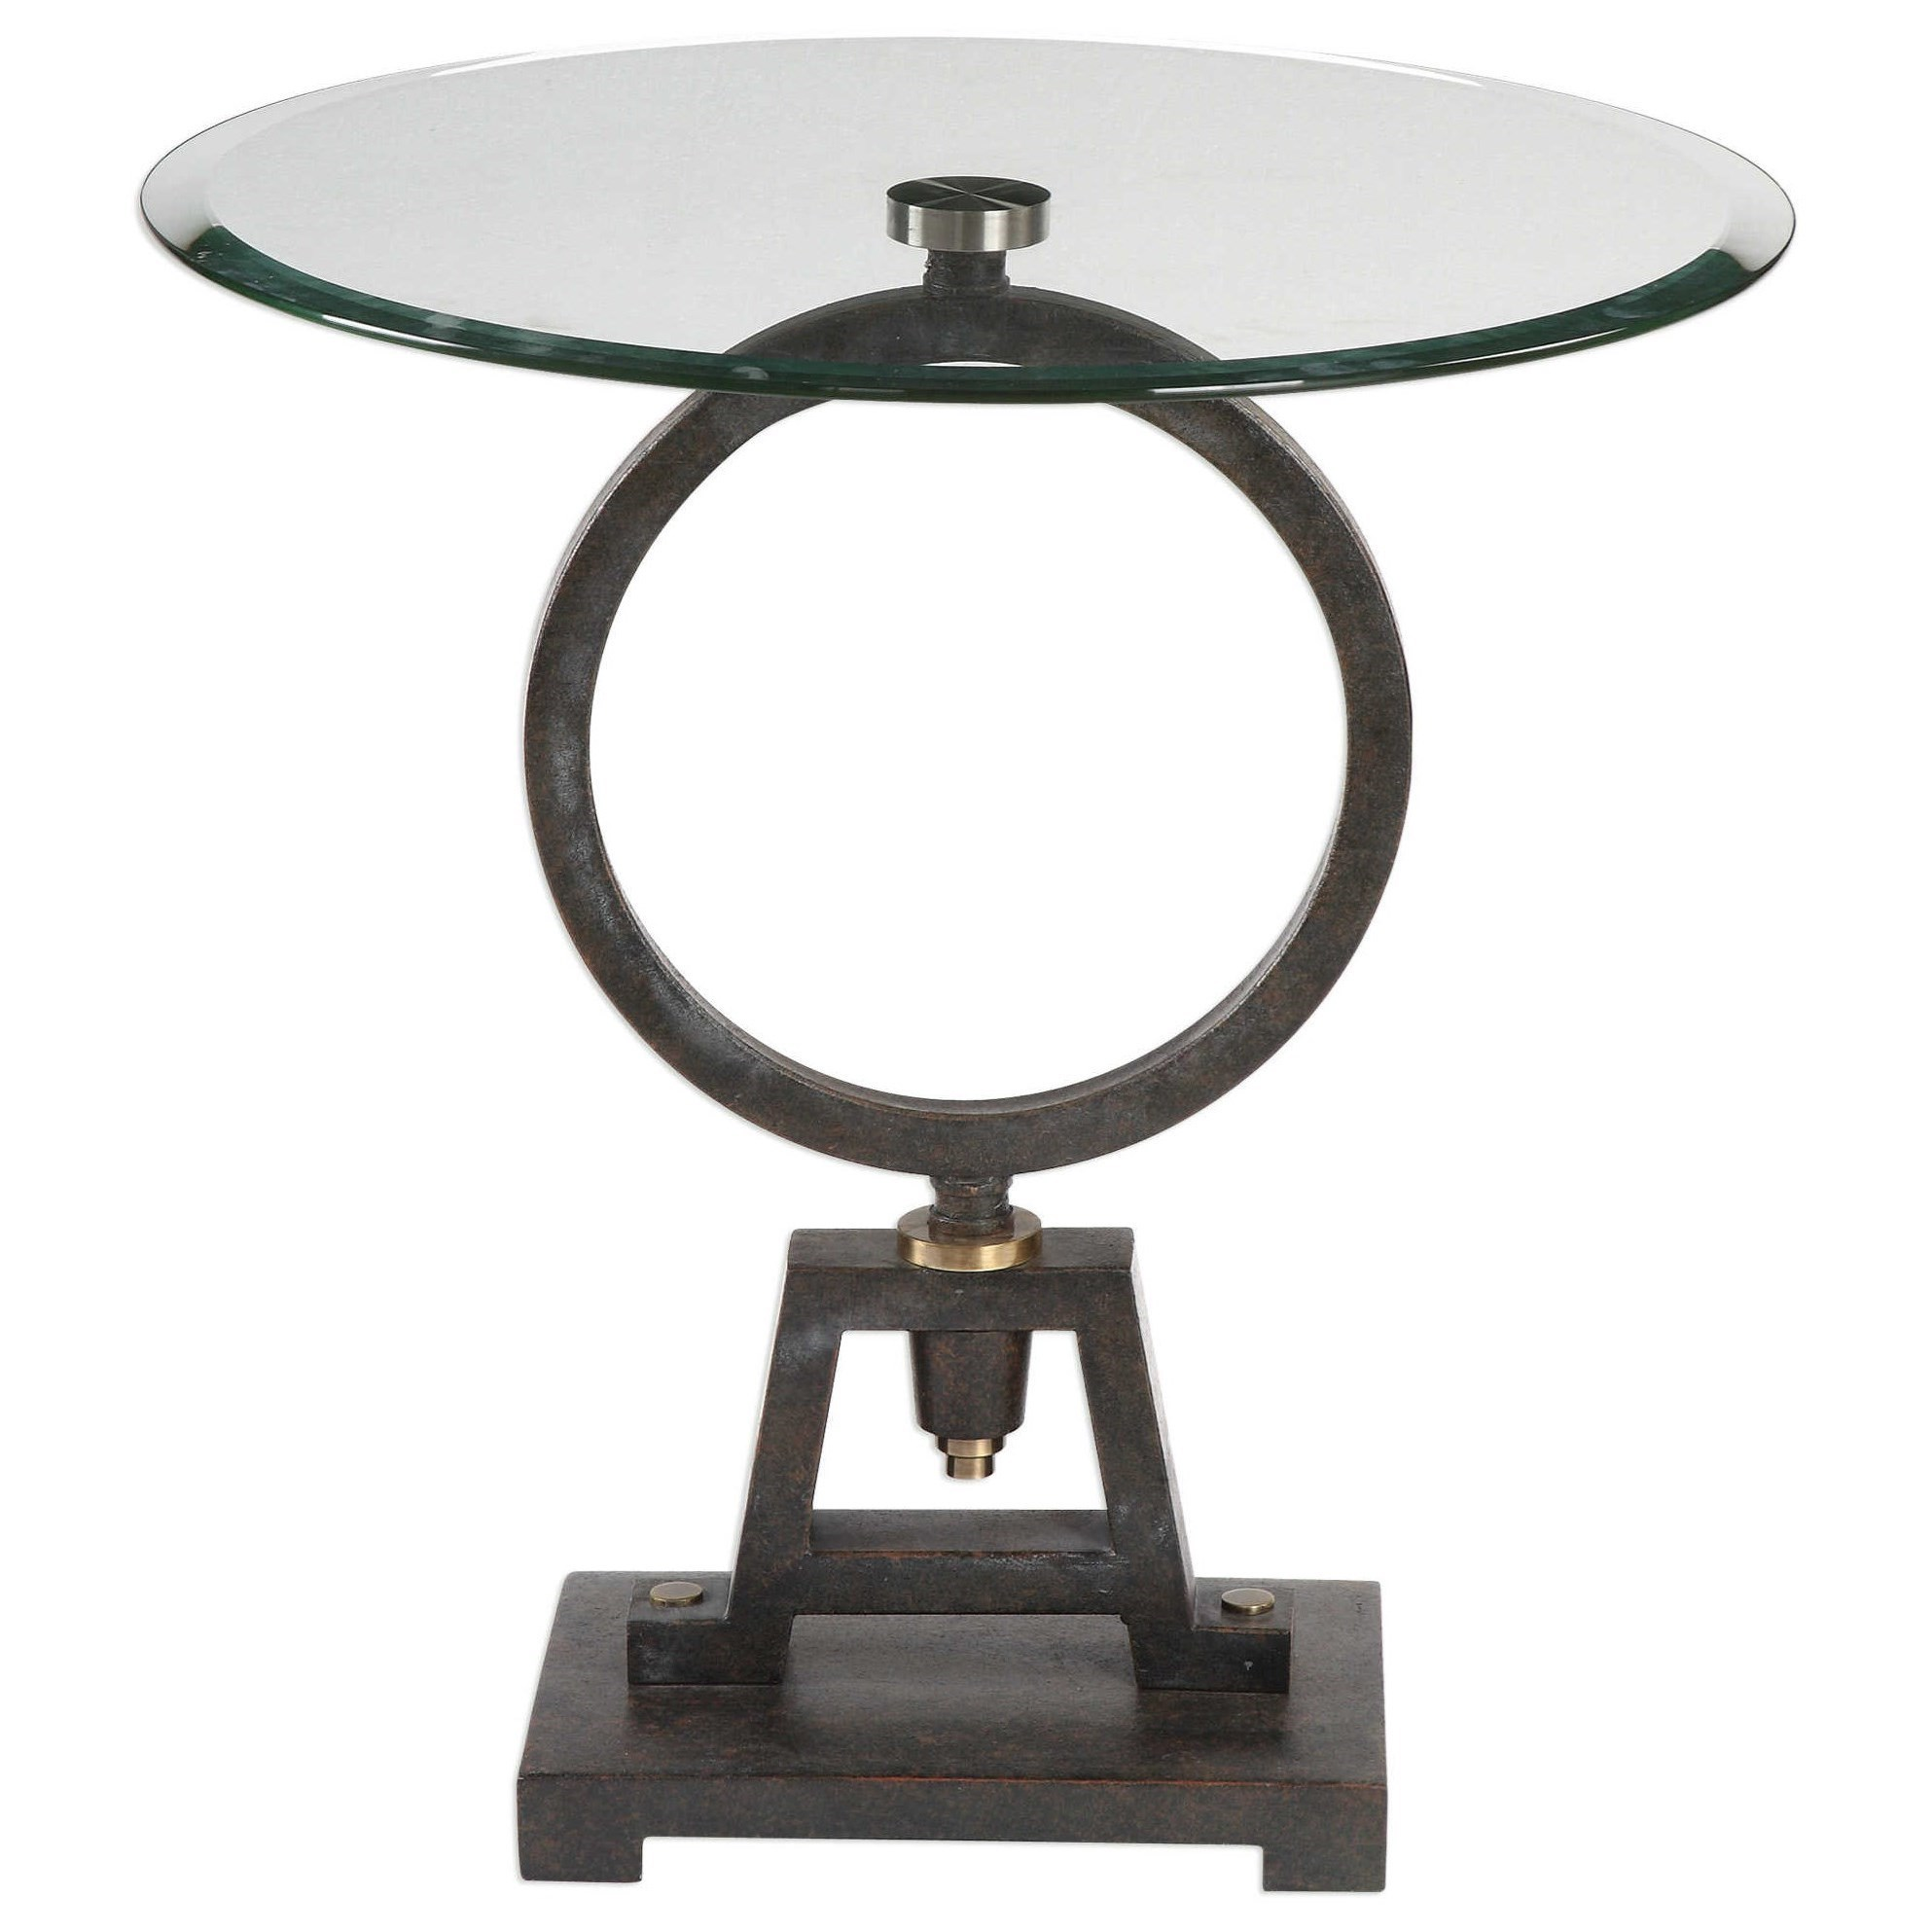 Medium image of uttermost accent furniture 24725 adan glass accent table   becker furniture world   end tables